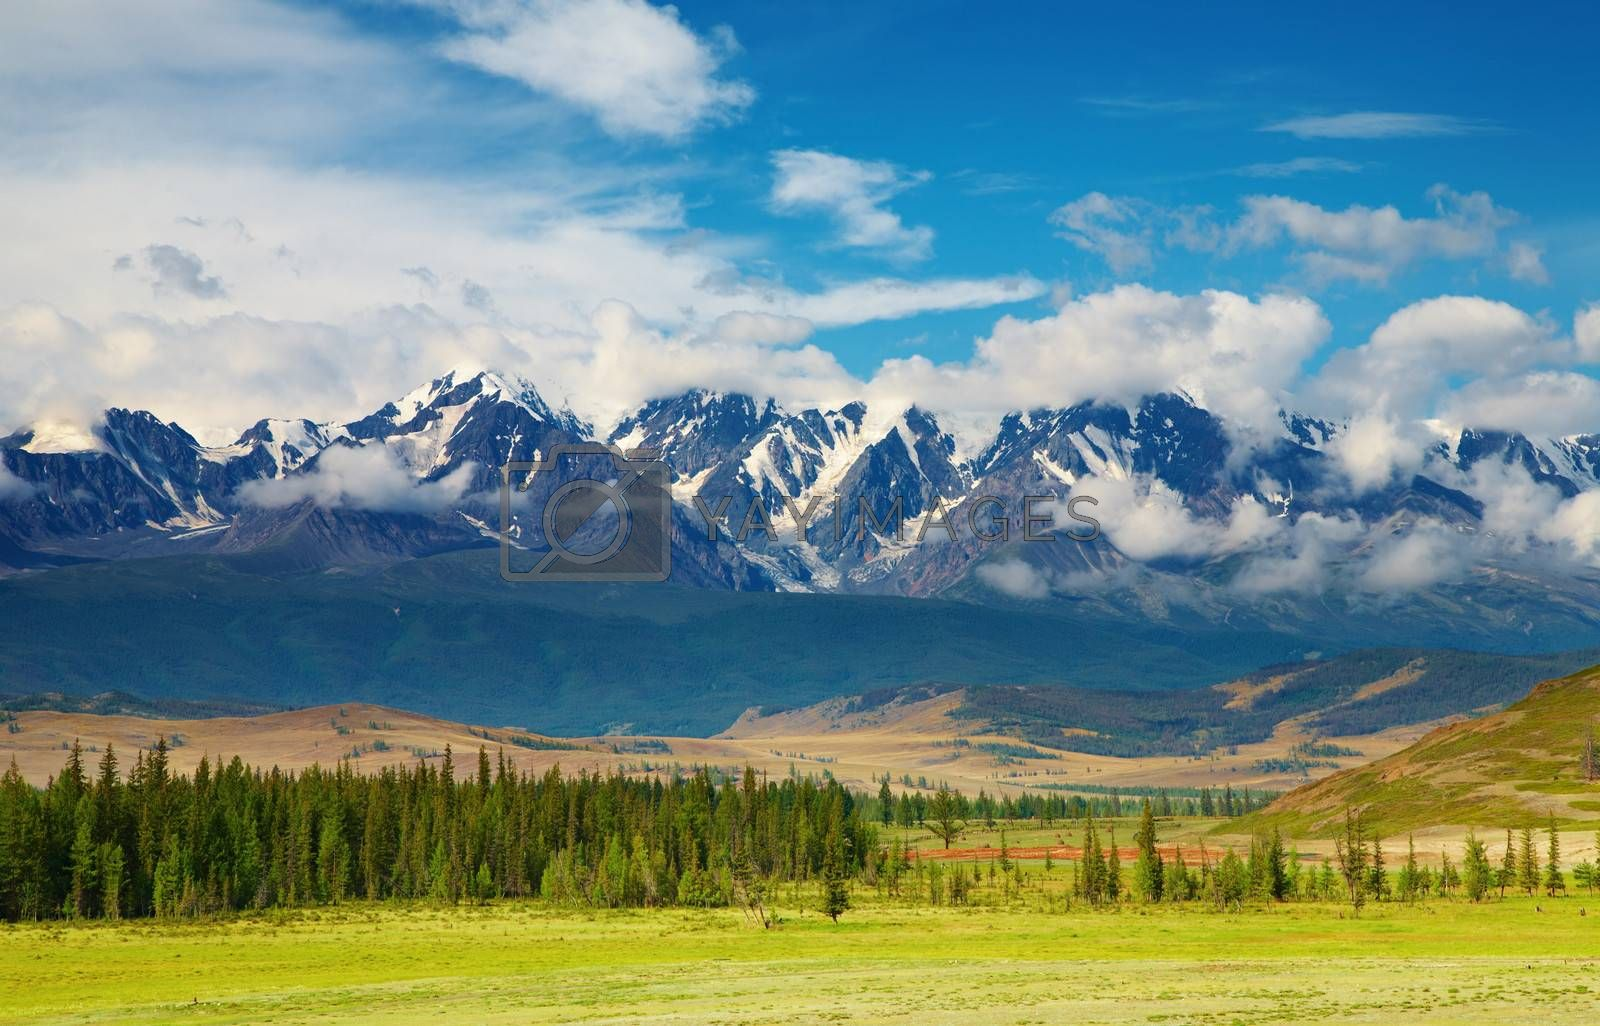 Mountain landscape with forest and blue sky, Altai mountains, Russia